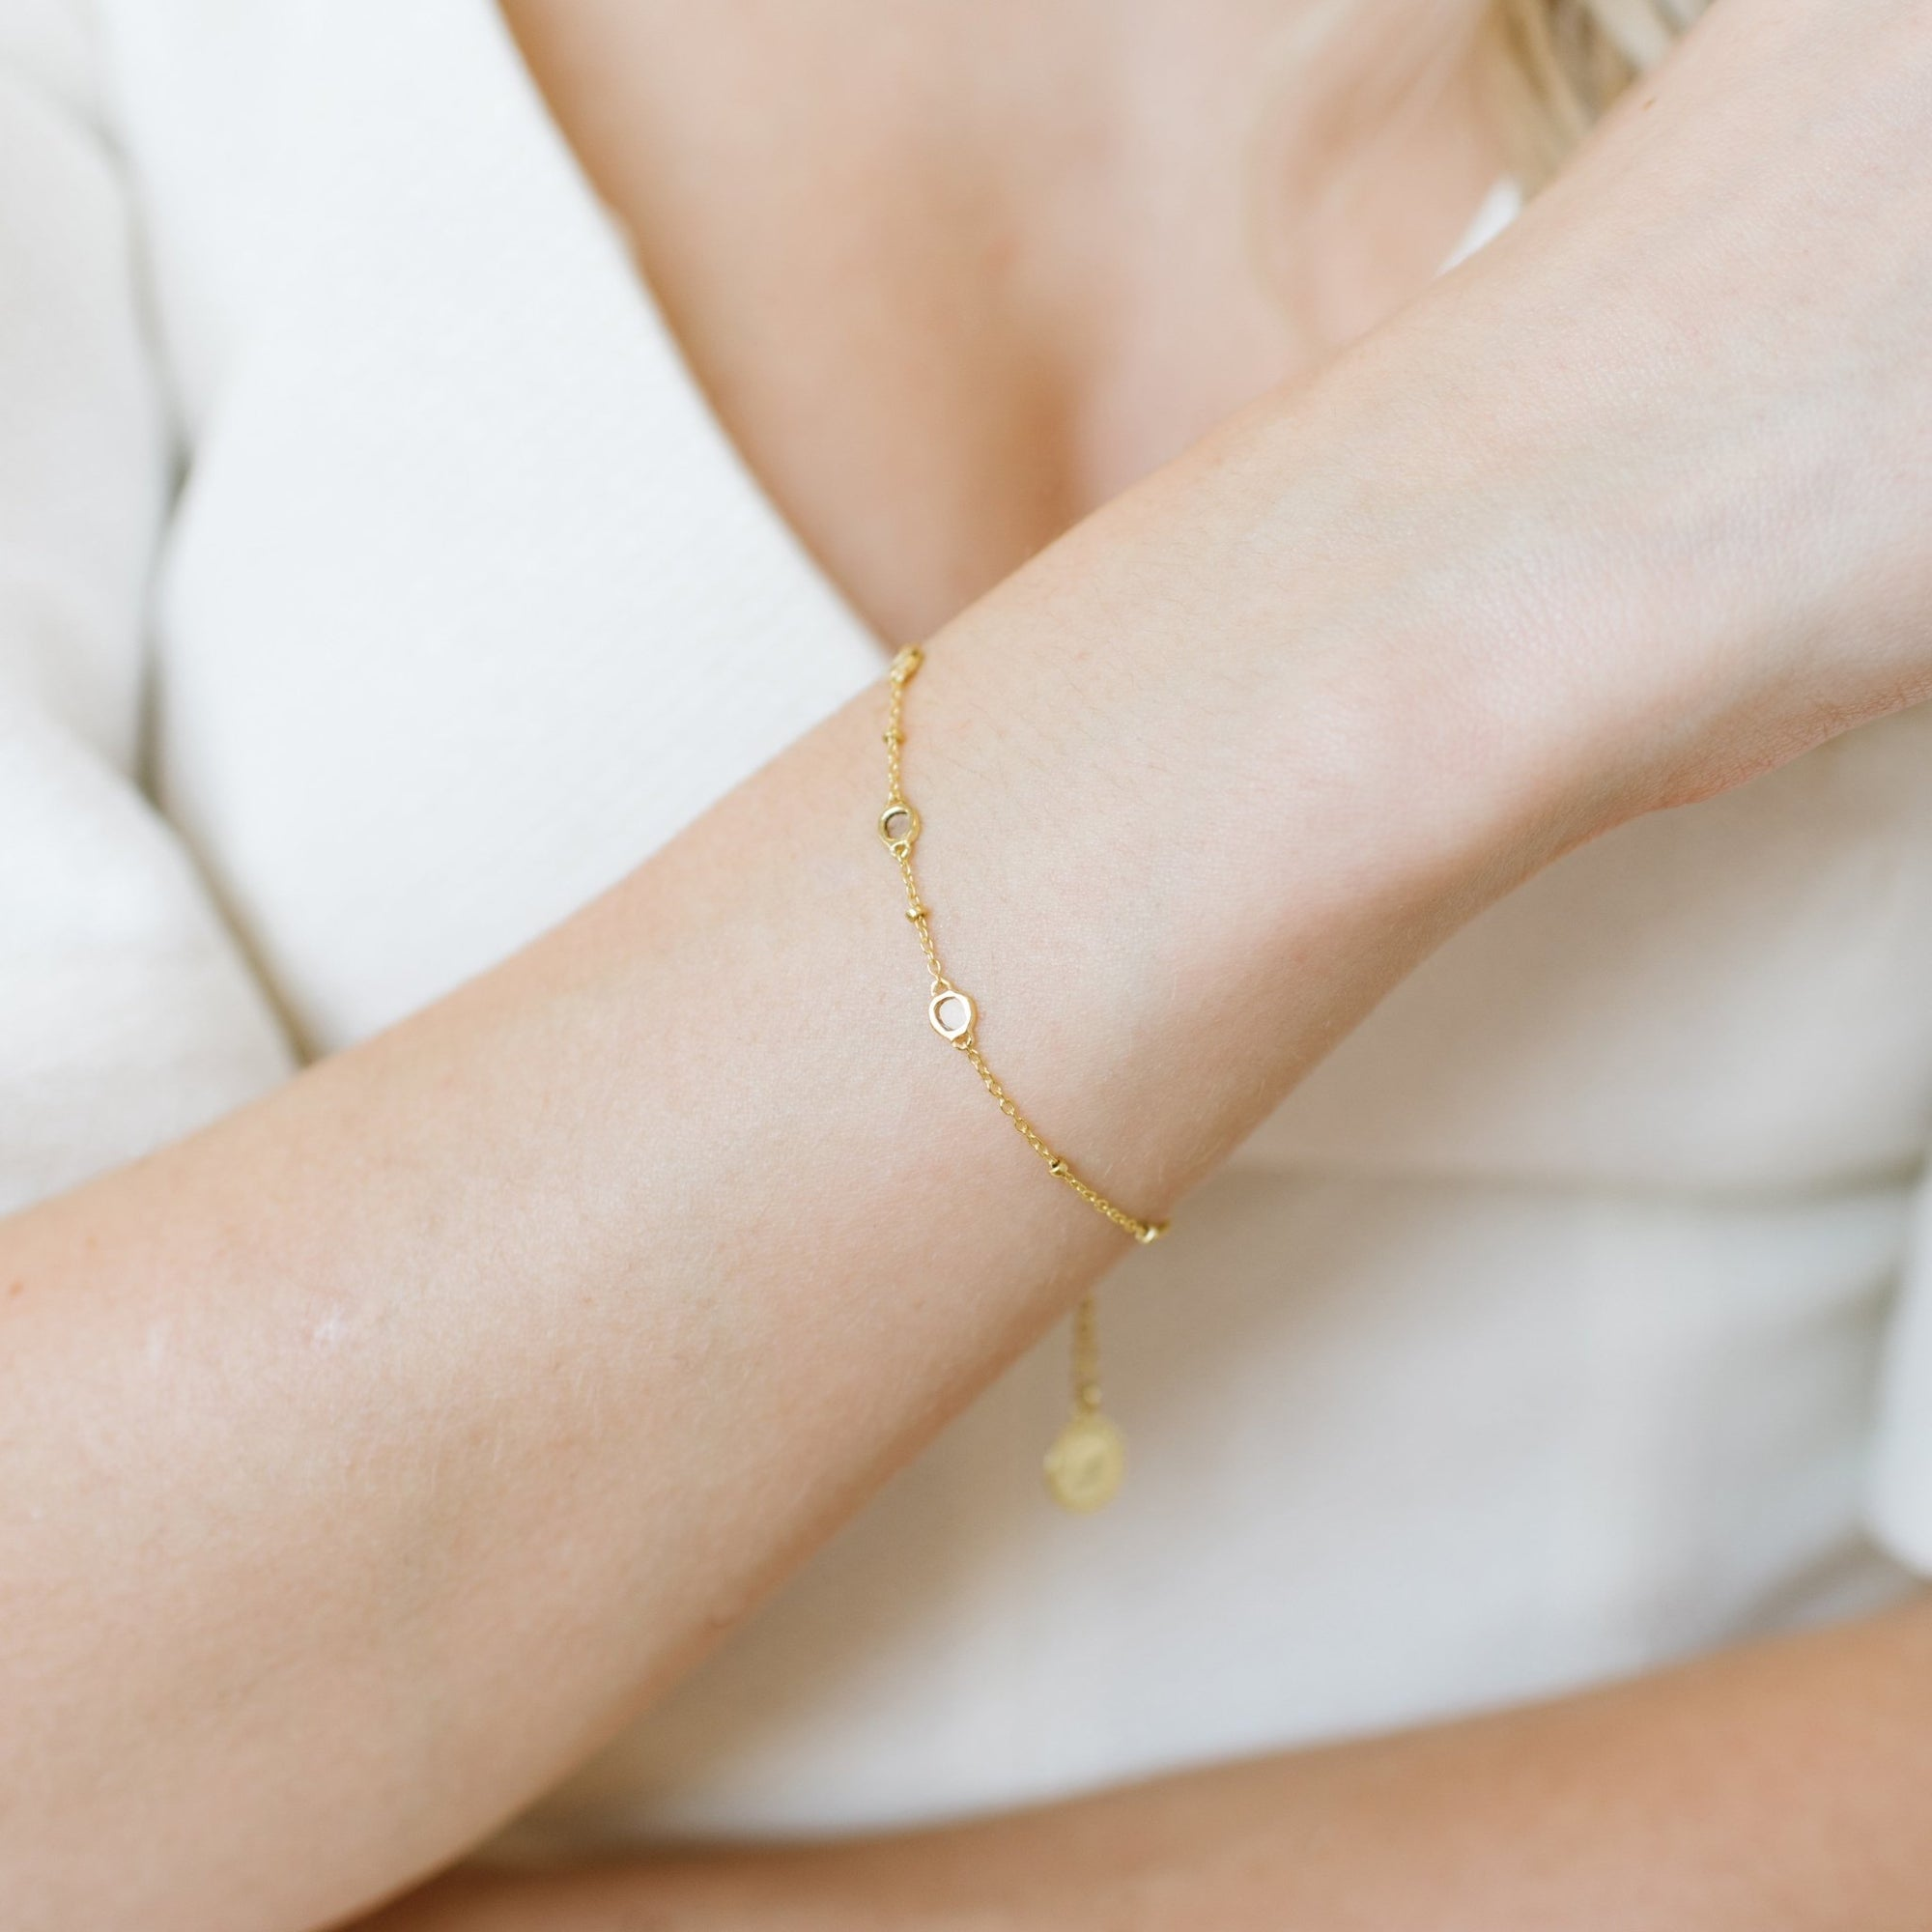 True Sliced Diamond Trio Bracelet Gold - SO PRETTY CARA COTTER